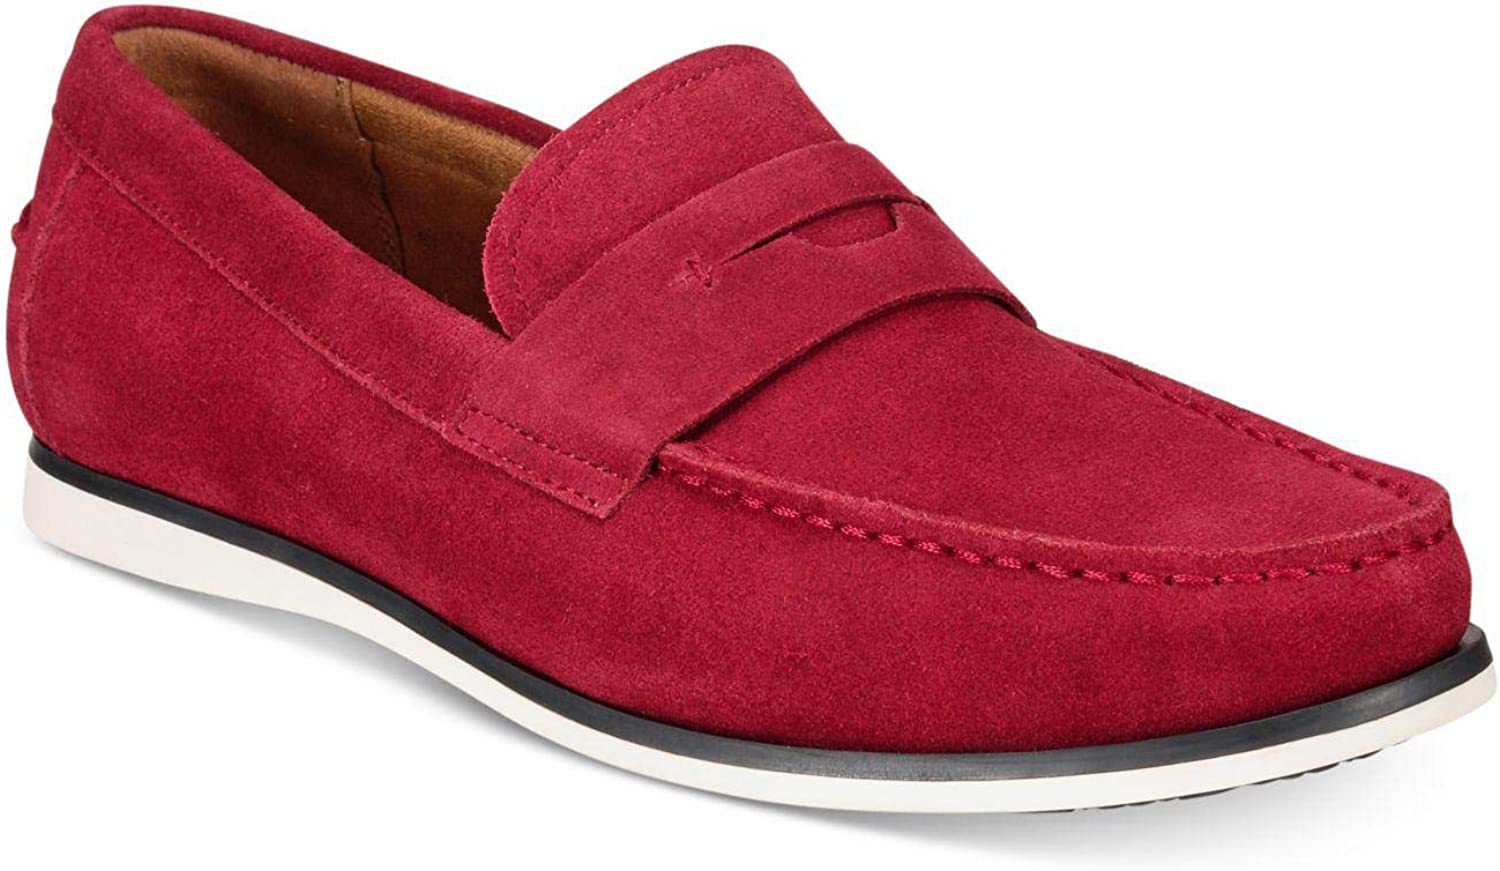 Red Size 11.0 Alfani Mens Sawyer Leather Closed Toe Penny Loafer